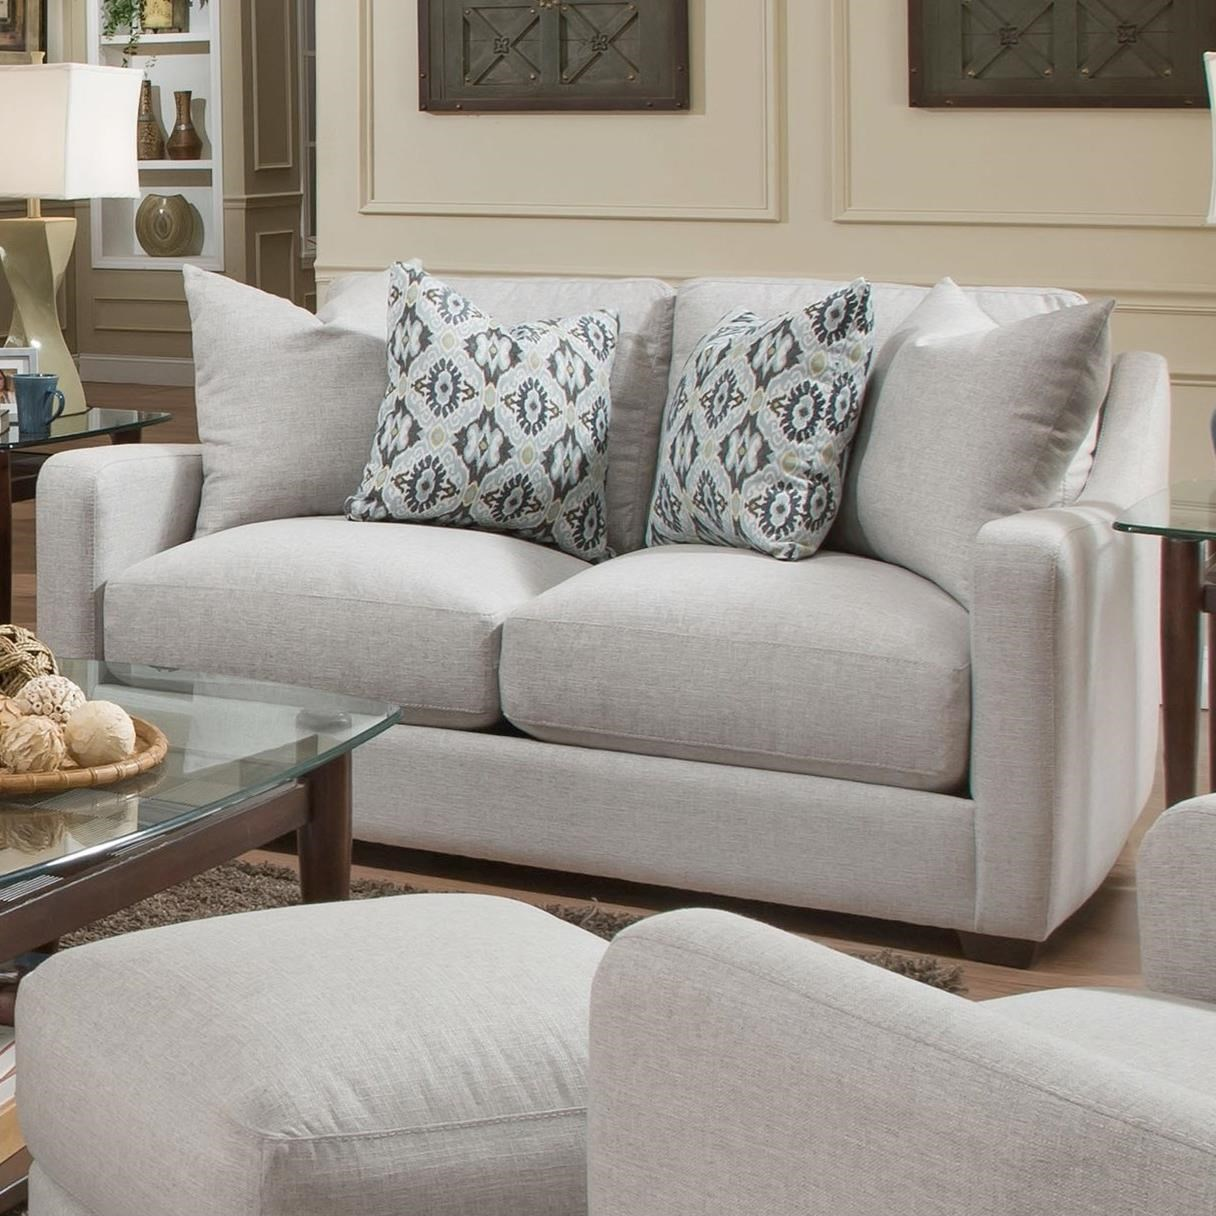 885 Loveseat by Franklin at Van Hill Furniture